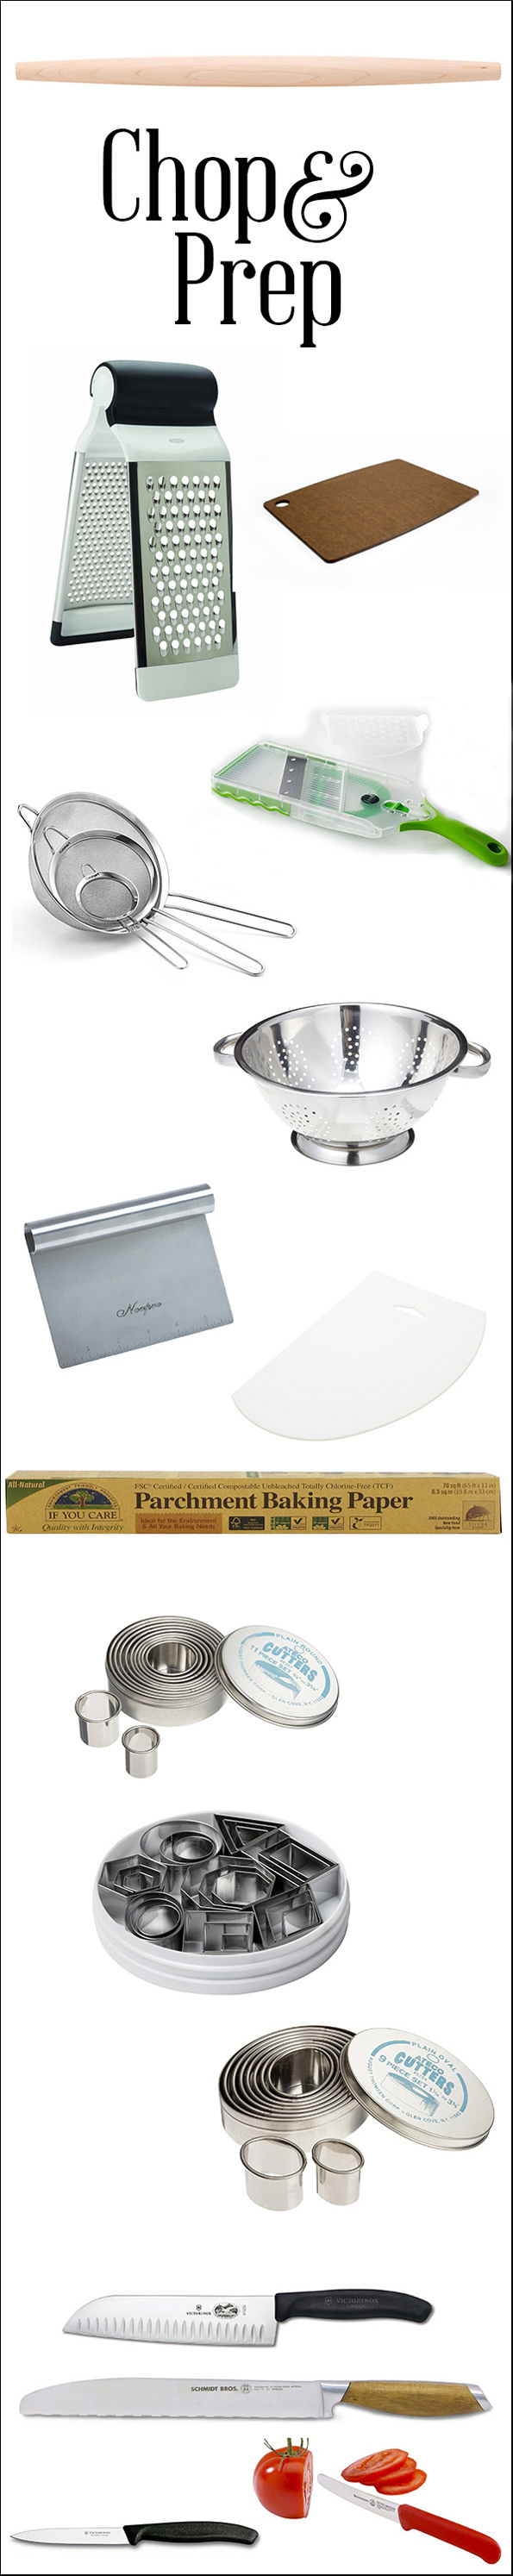 Essential Cooking and Baking Equipment: Chop & Prep